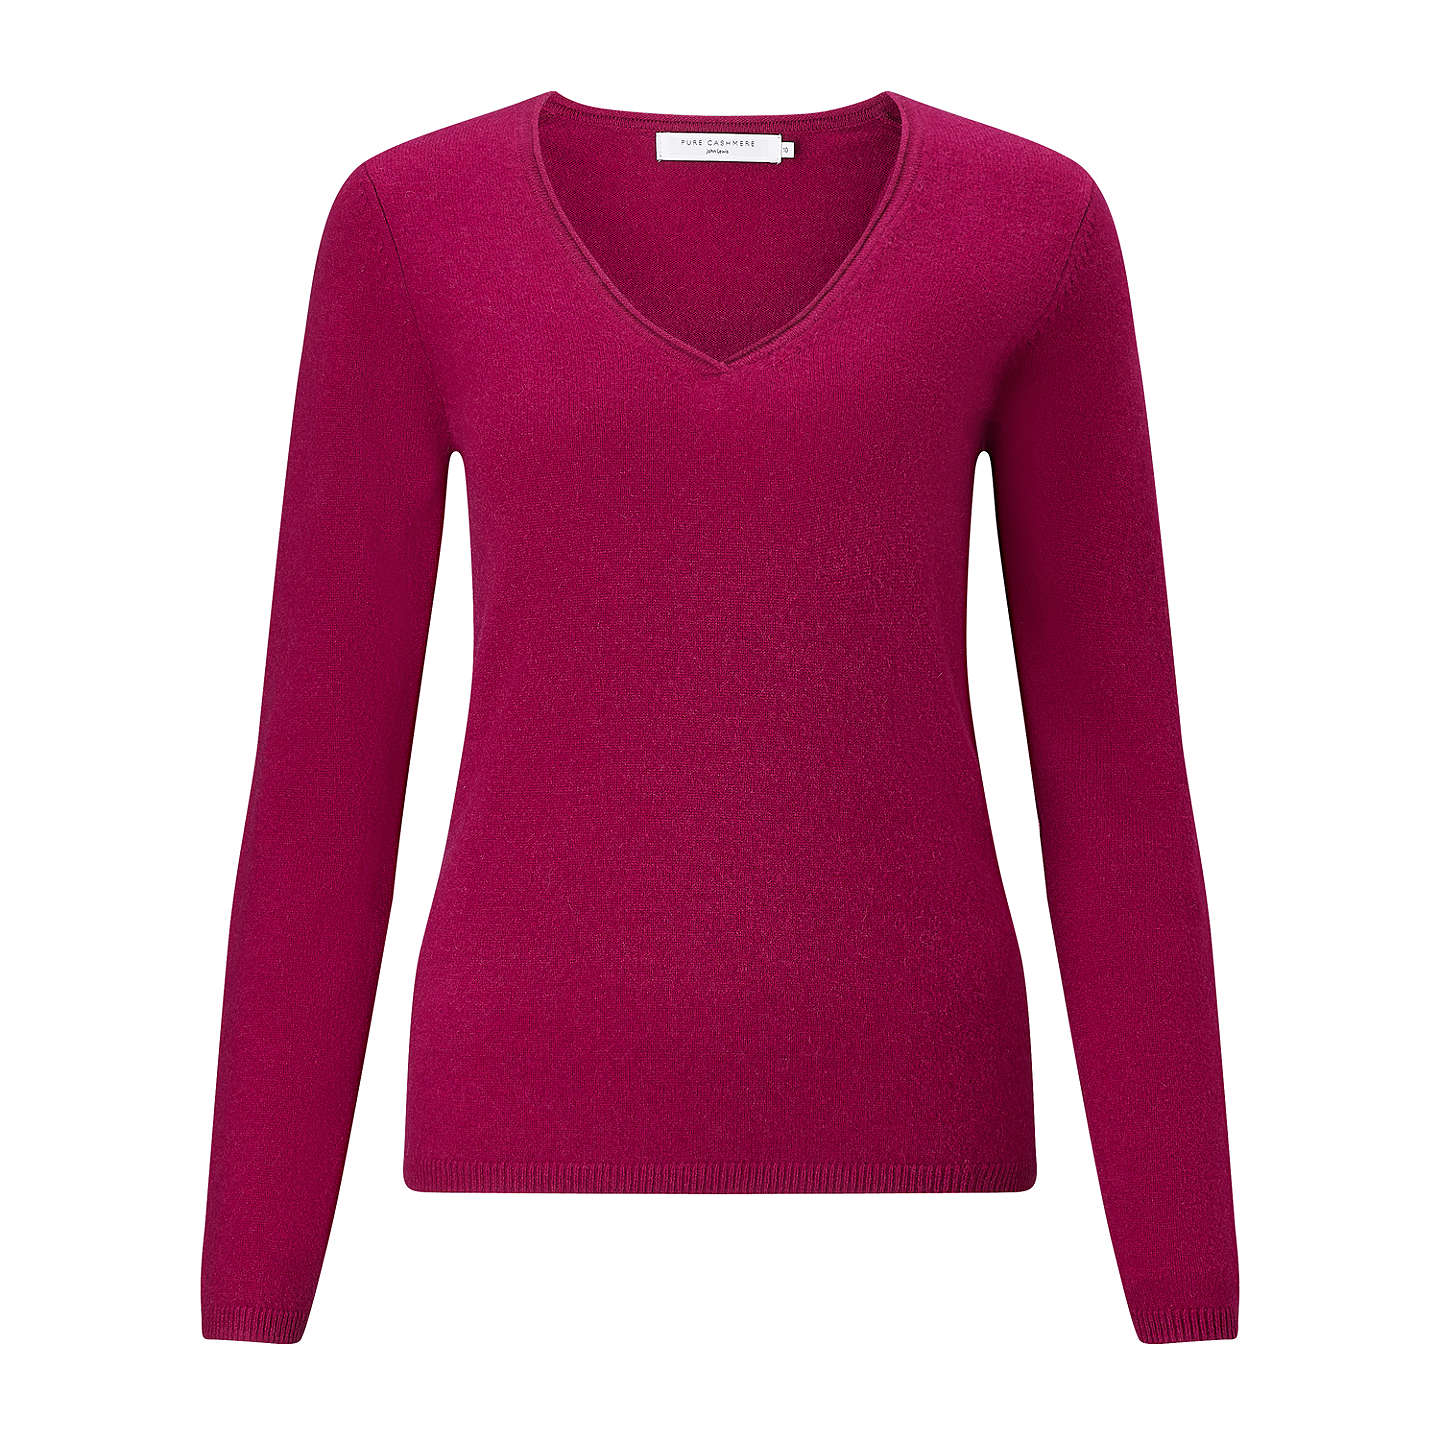 BuyJohn Lewis Cashmere V-Neck Jumper, Berry, 8 Online at johnlewis.com